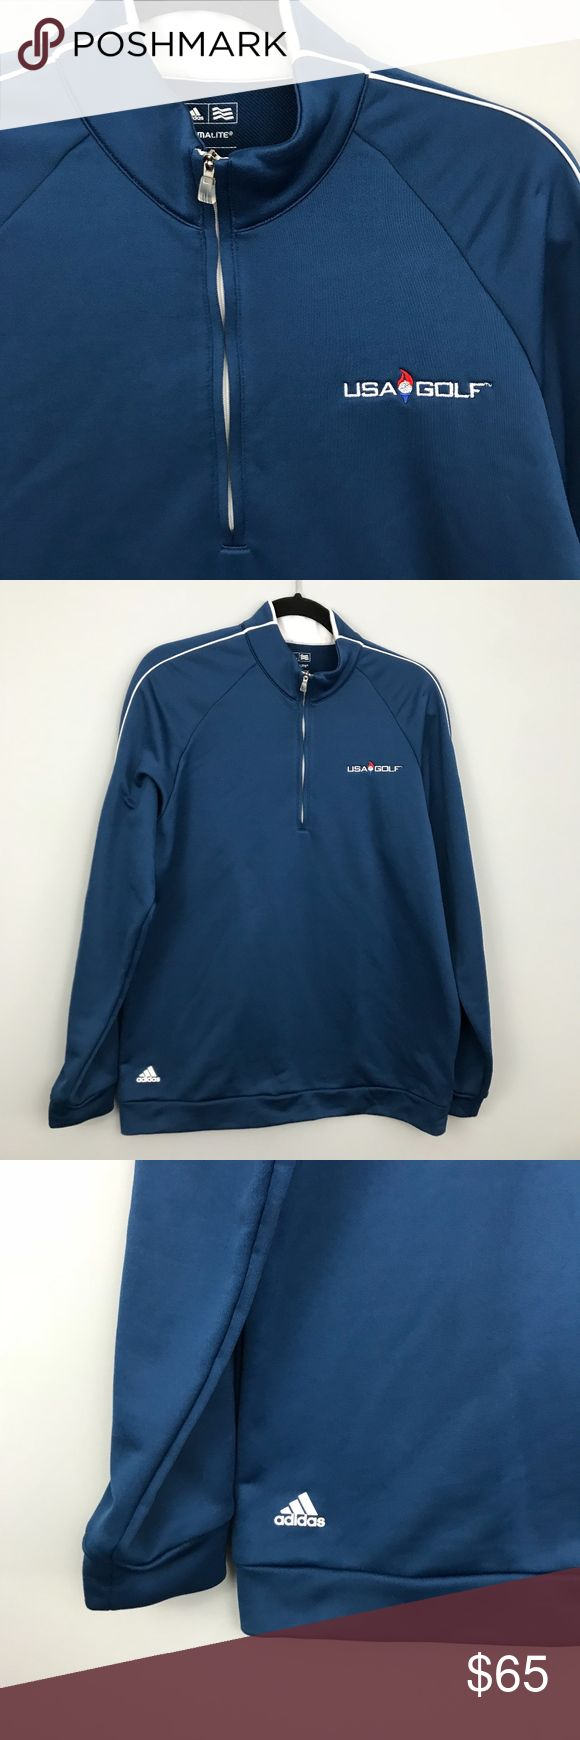 Adidas USA Golf Olympic 1/4 Zip Pullover - RARE M 2016 Adidas USA GOLF Olympic 3-Stripes 1/4 zip Layering Pullover   * RARE!! - Thermal 1/4 Zip Pullover - Soft French Terry  - Classic 3-Stripe - White Trim - Raglan Sleeves - Cuff and Banded Bottom - Great condition, only FLAW is minor snag adidas Shirts